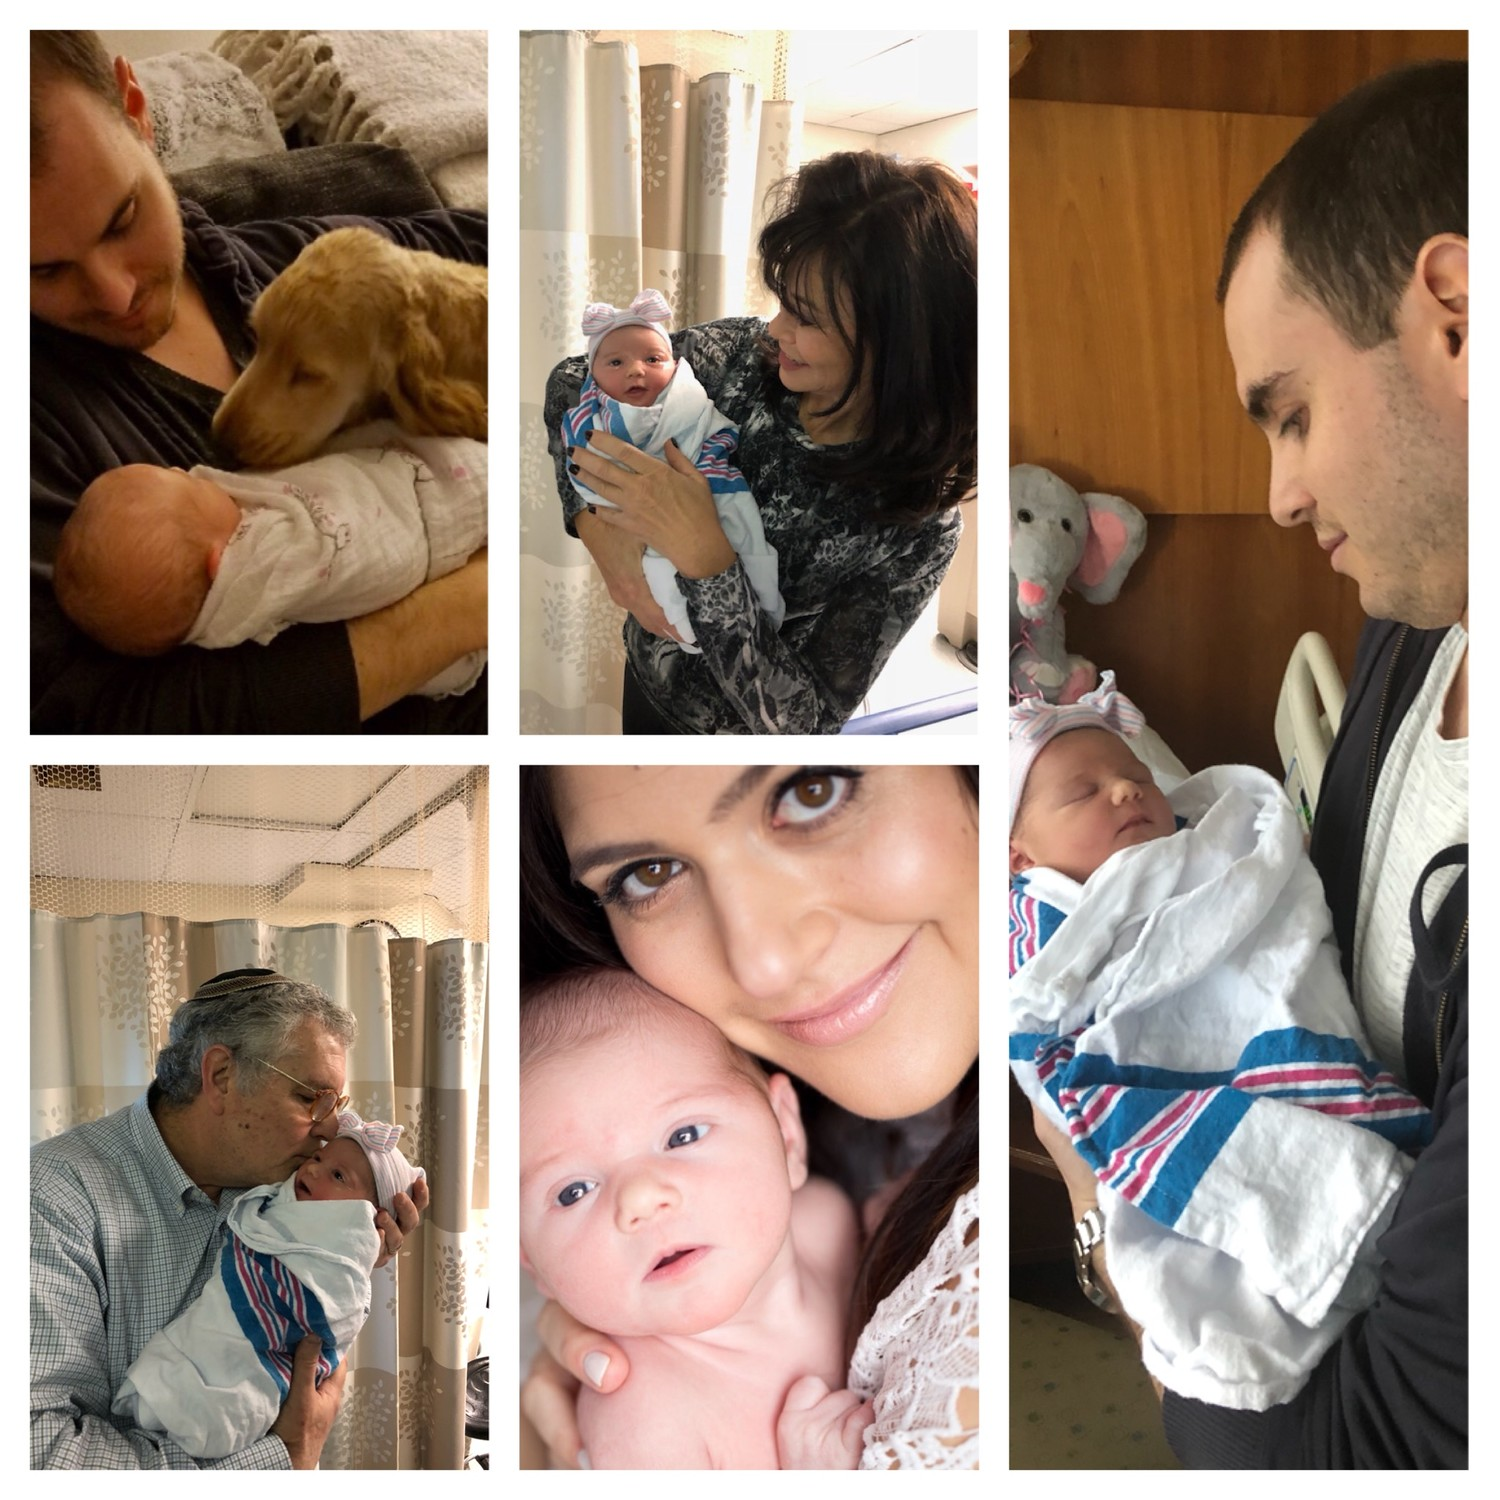 Clockwise from top left: Baby Arielle Emma (Rifka Miriam) with dad Jeremy and Penny, with Judy, with Jeremy, with Darya, and with saba David.